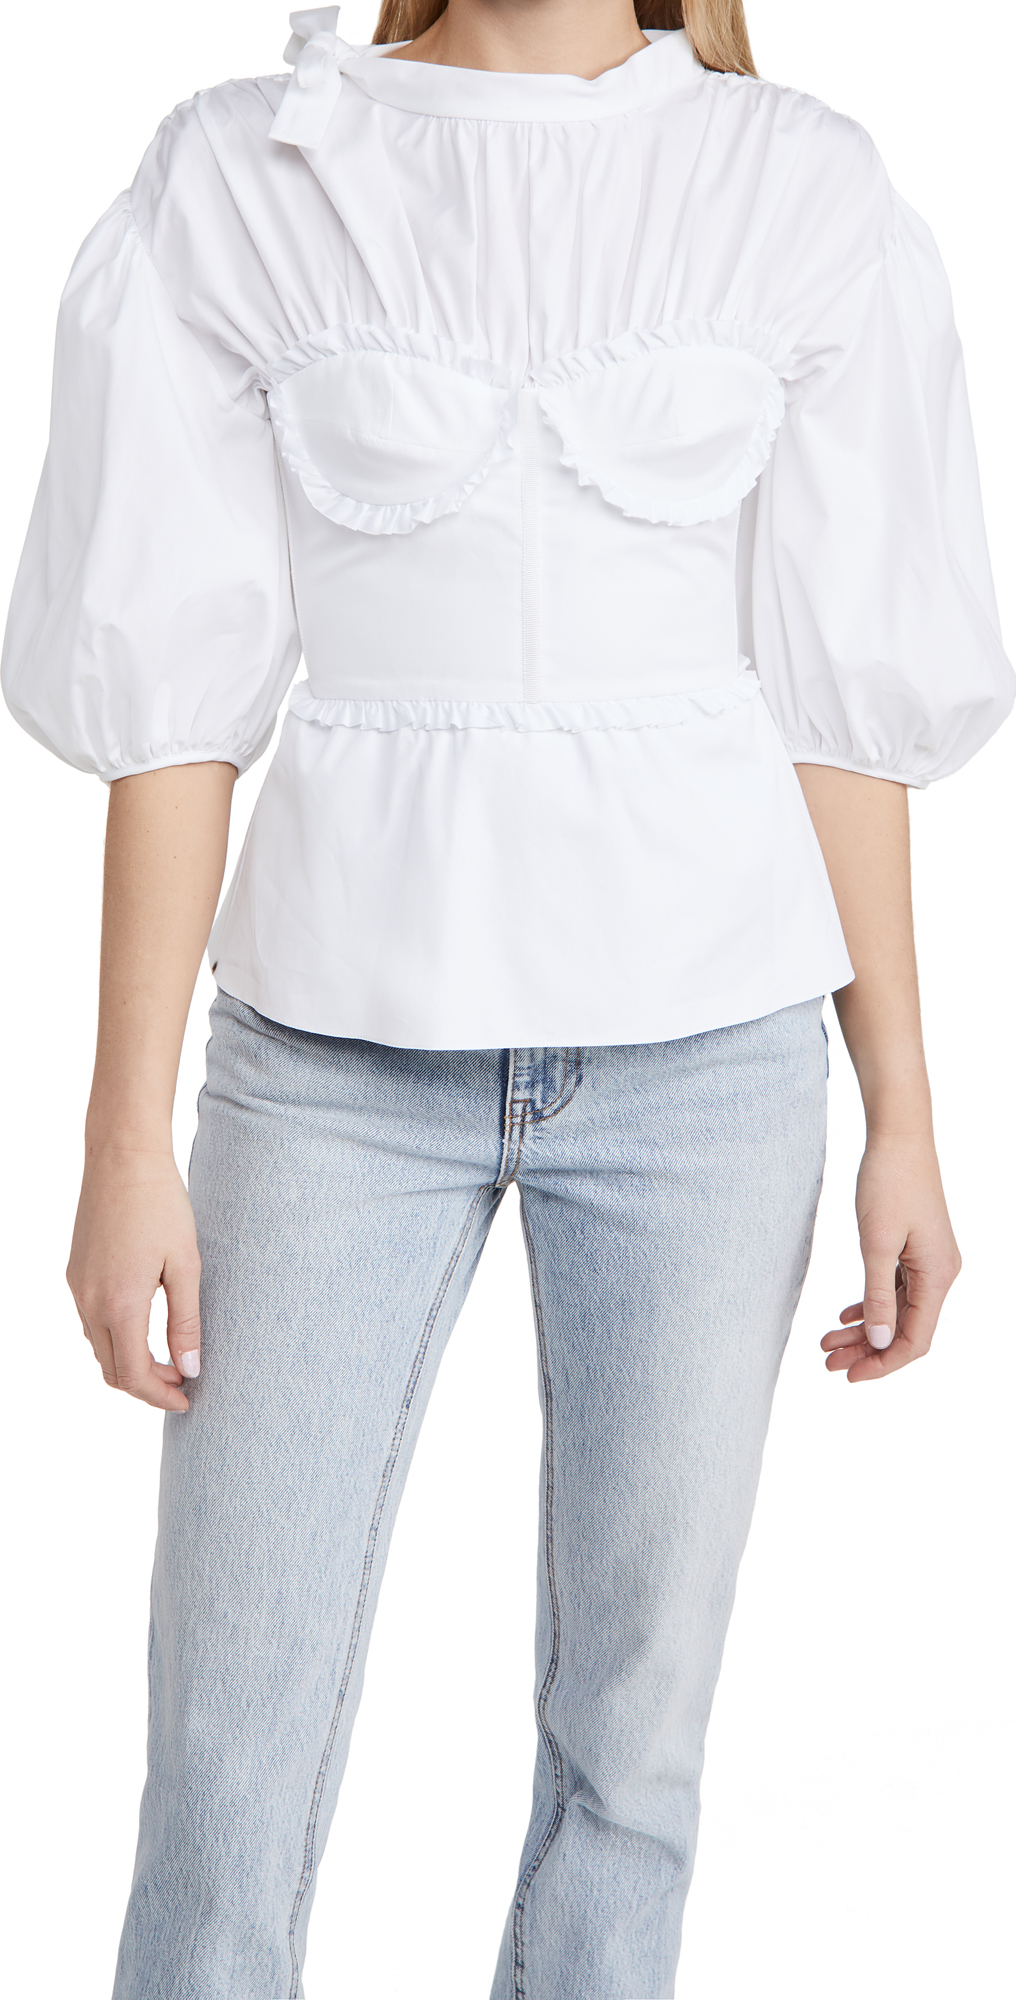 Brock Collection Ladies Woven Shirt Required